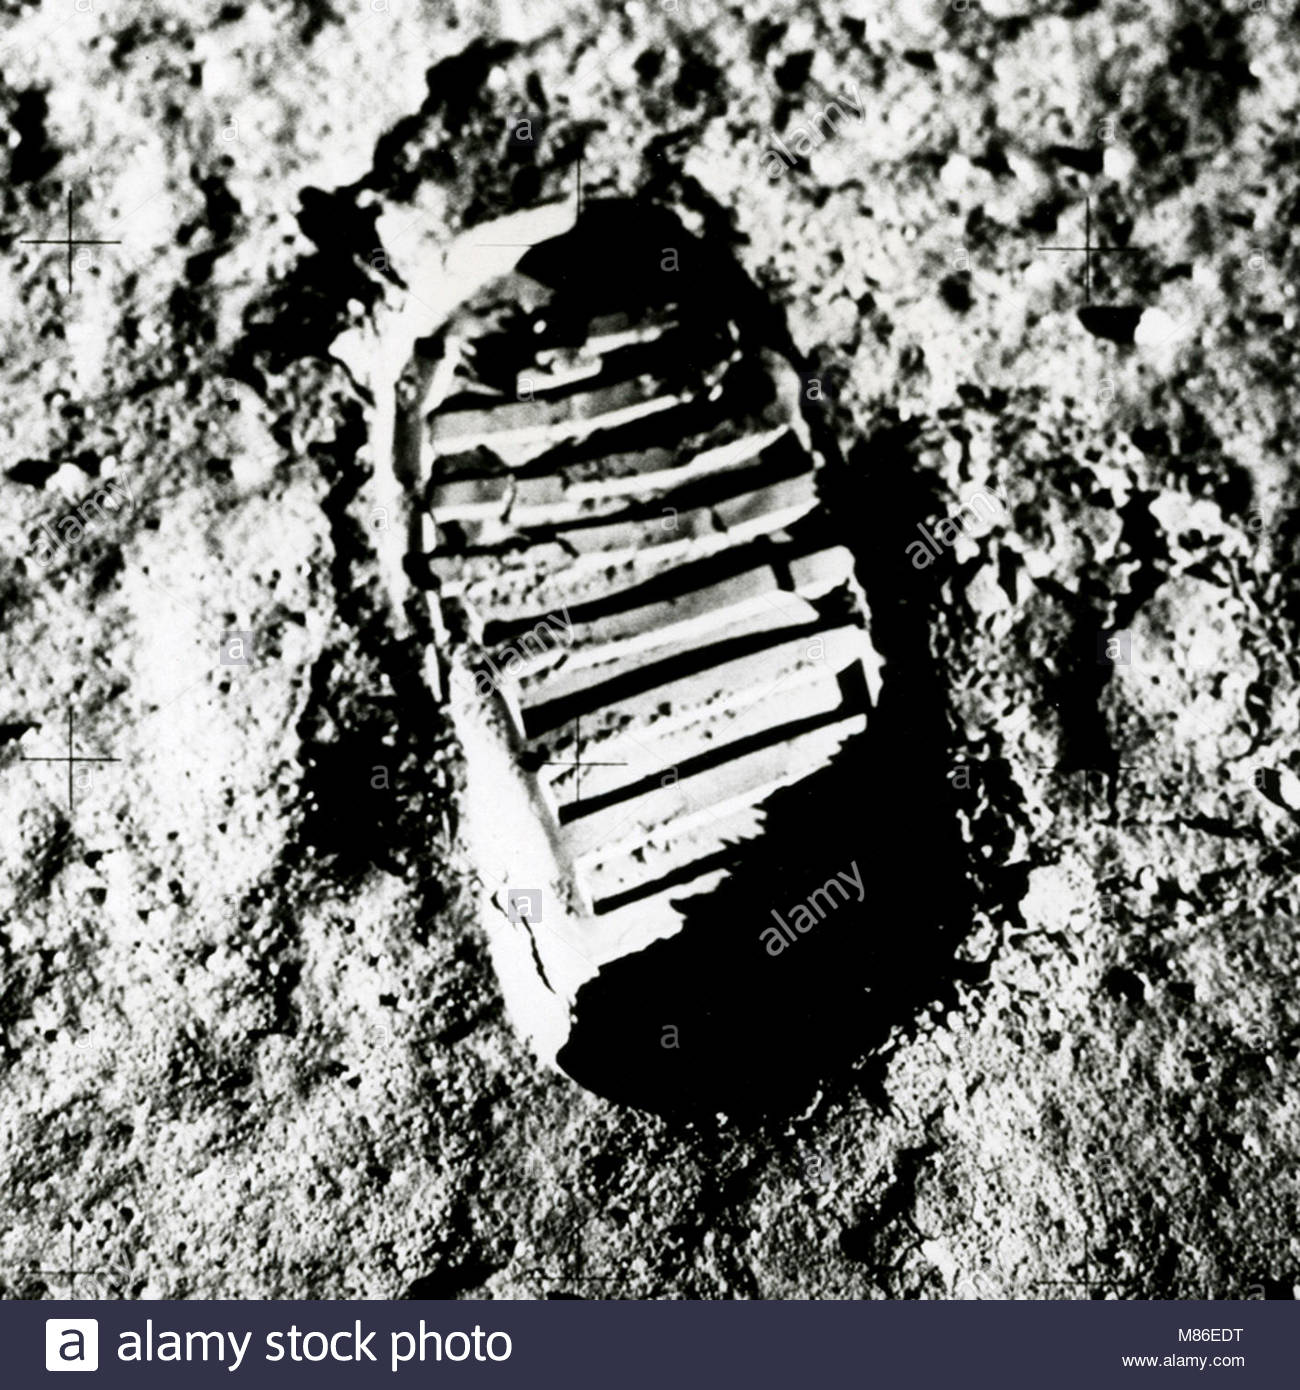 Neil Armstrong put his left foot on the rocky Moon. The Eagle has landed. Eagle was the name of the Lunar Module. - Stock Image